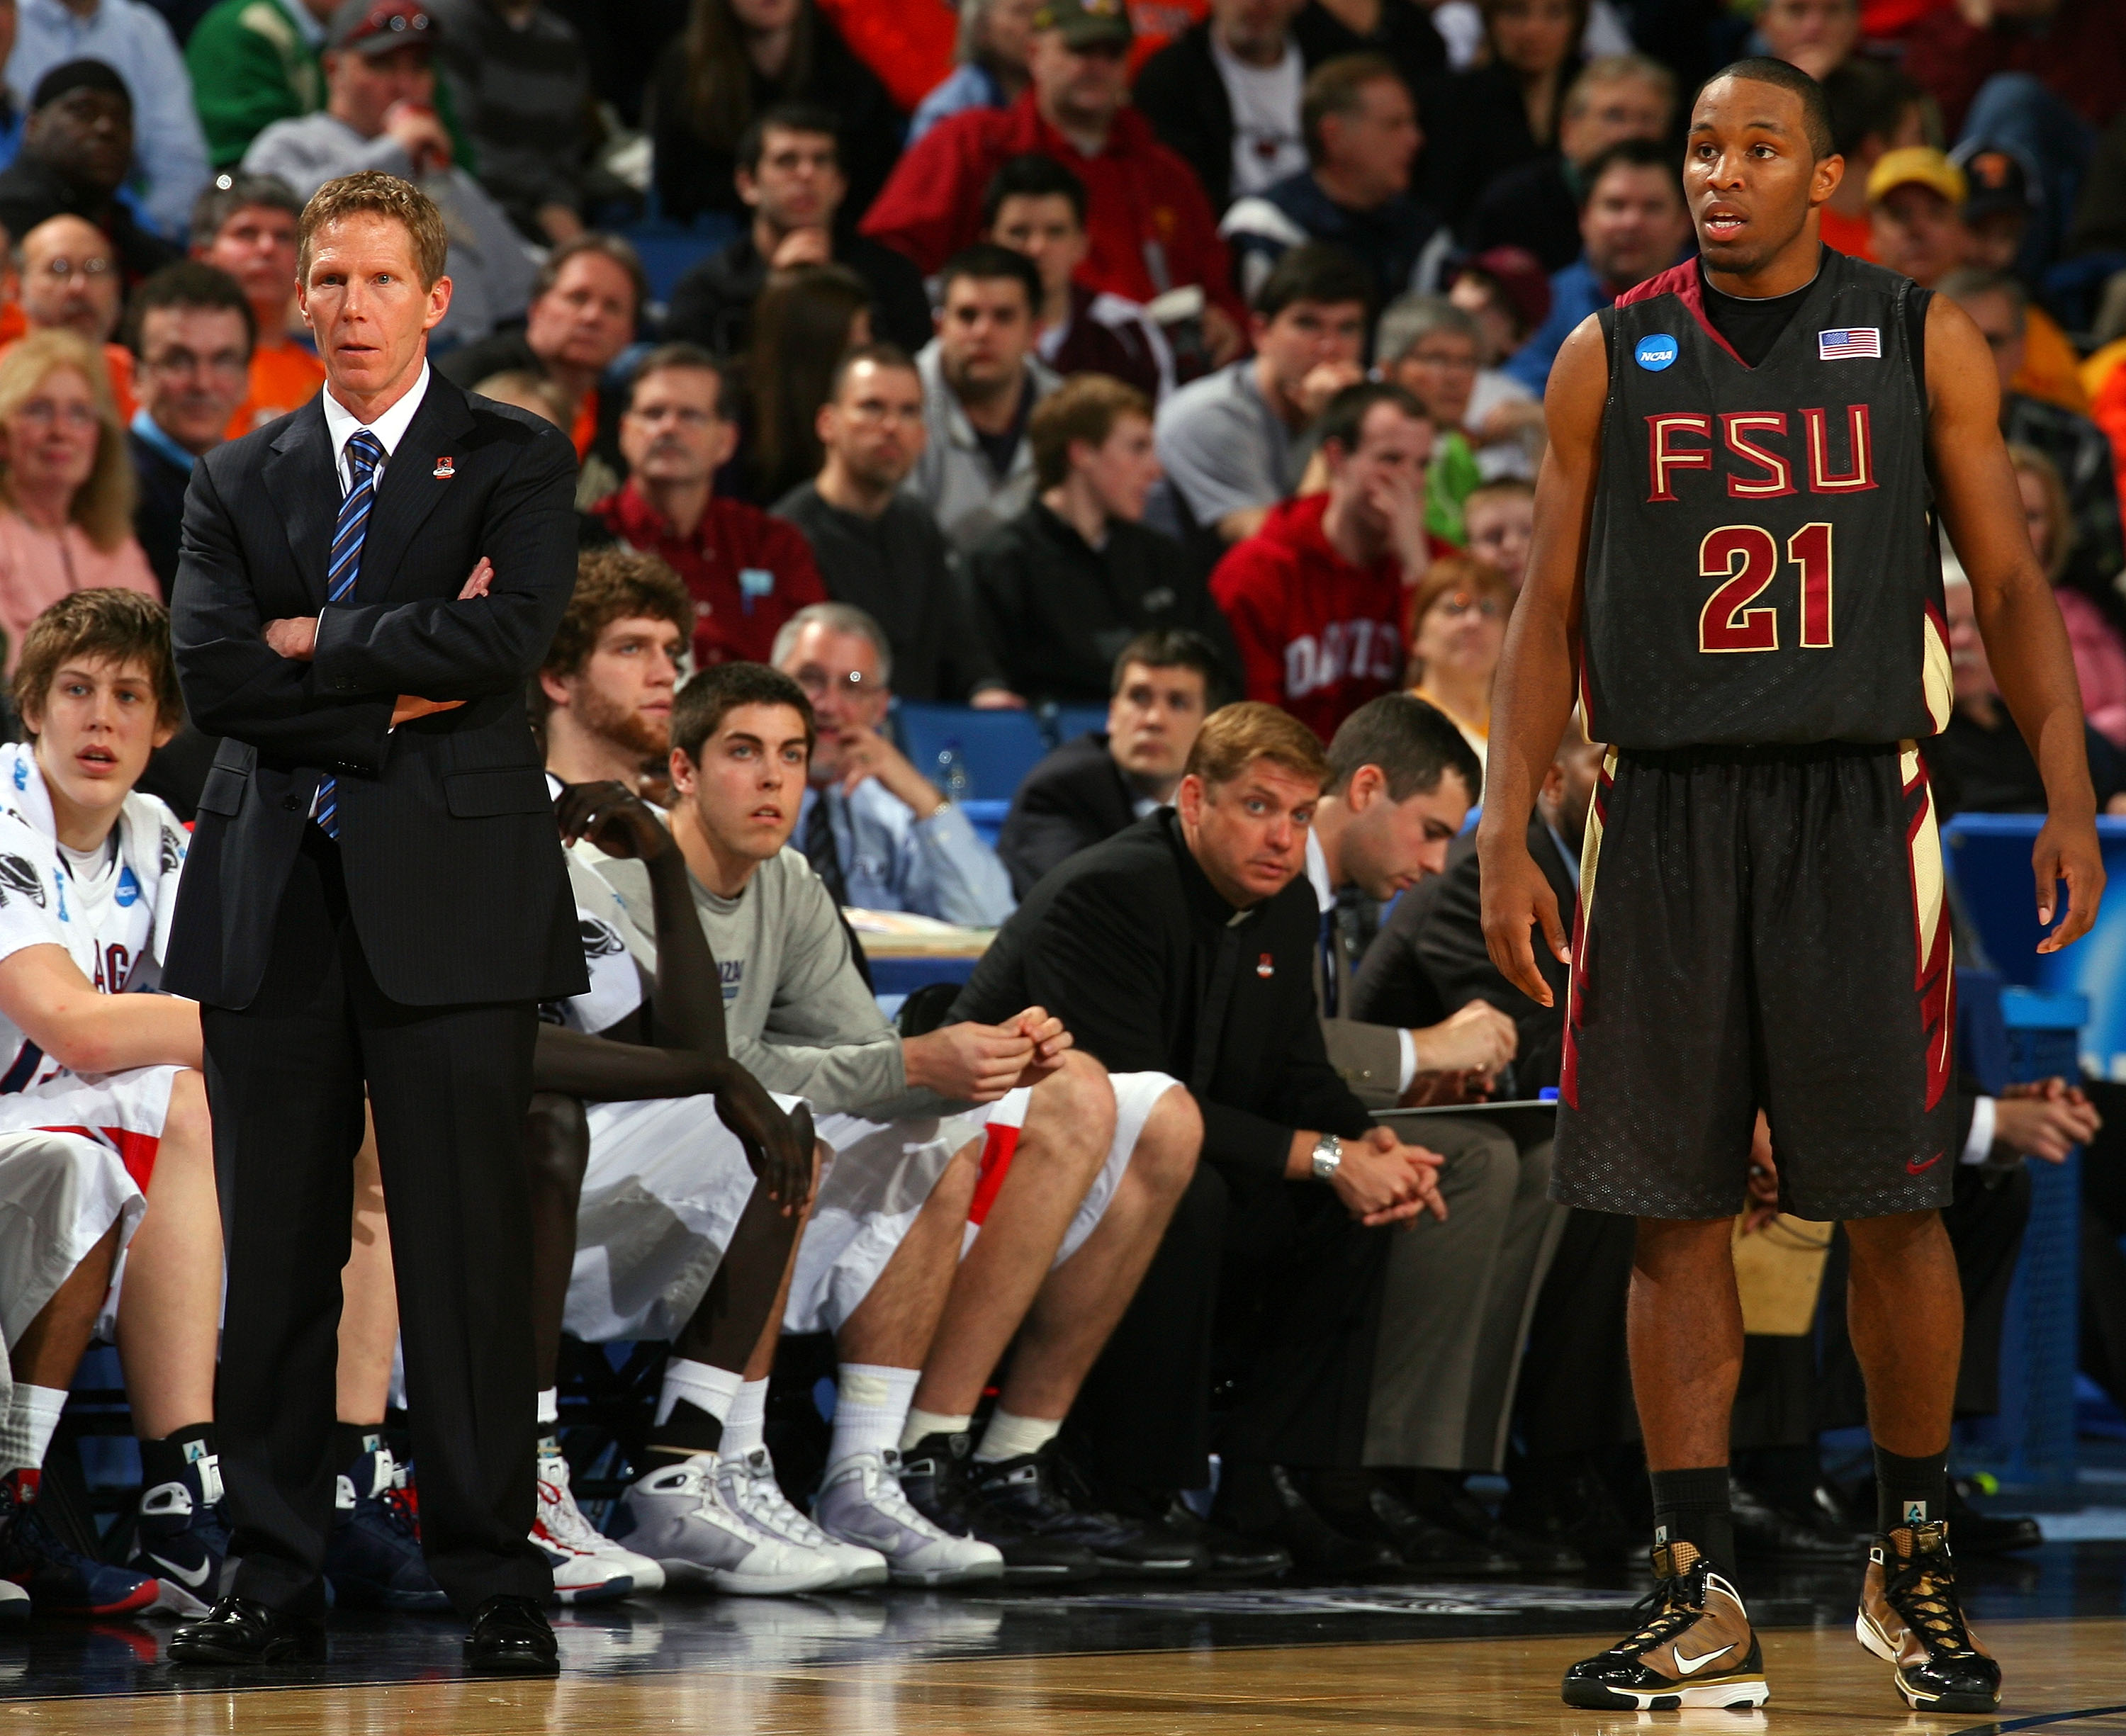 BUFFALO, NY - MARCH 19:  Head coach Mark Few of the Gonzaga Bulldogs and Michael Snaer #21 of the Florida State Seminoles look on during the first round of the 2010 NCAA men's basketball tournament at HSBC Arena on March 19, 2010 in Buffalo, New York.  (P